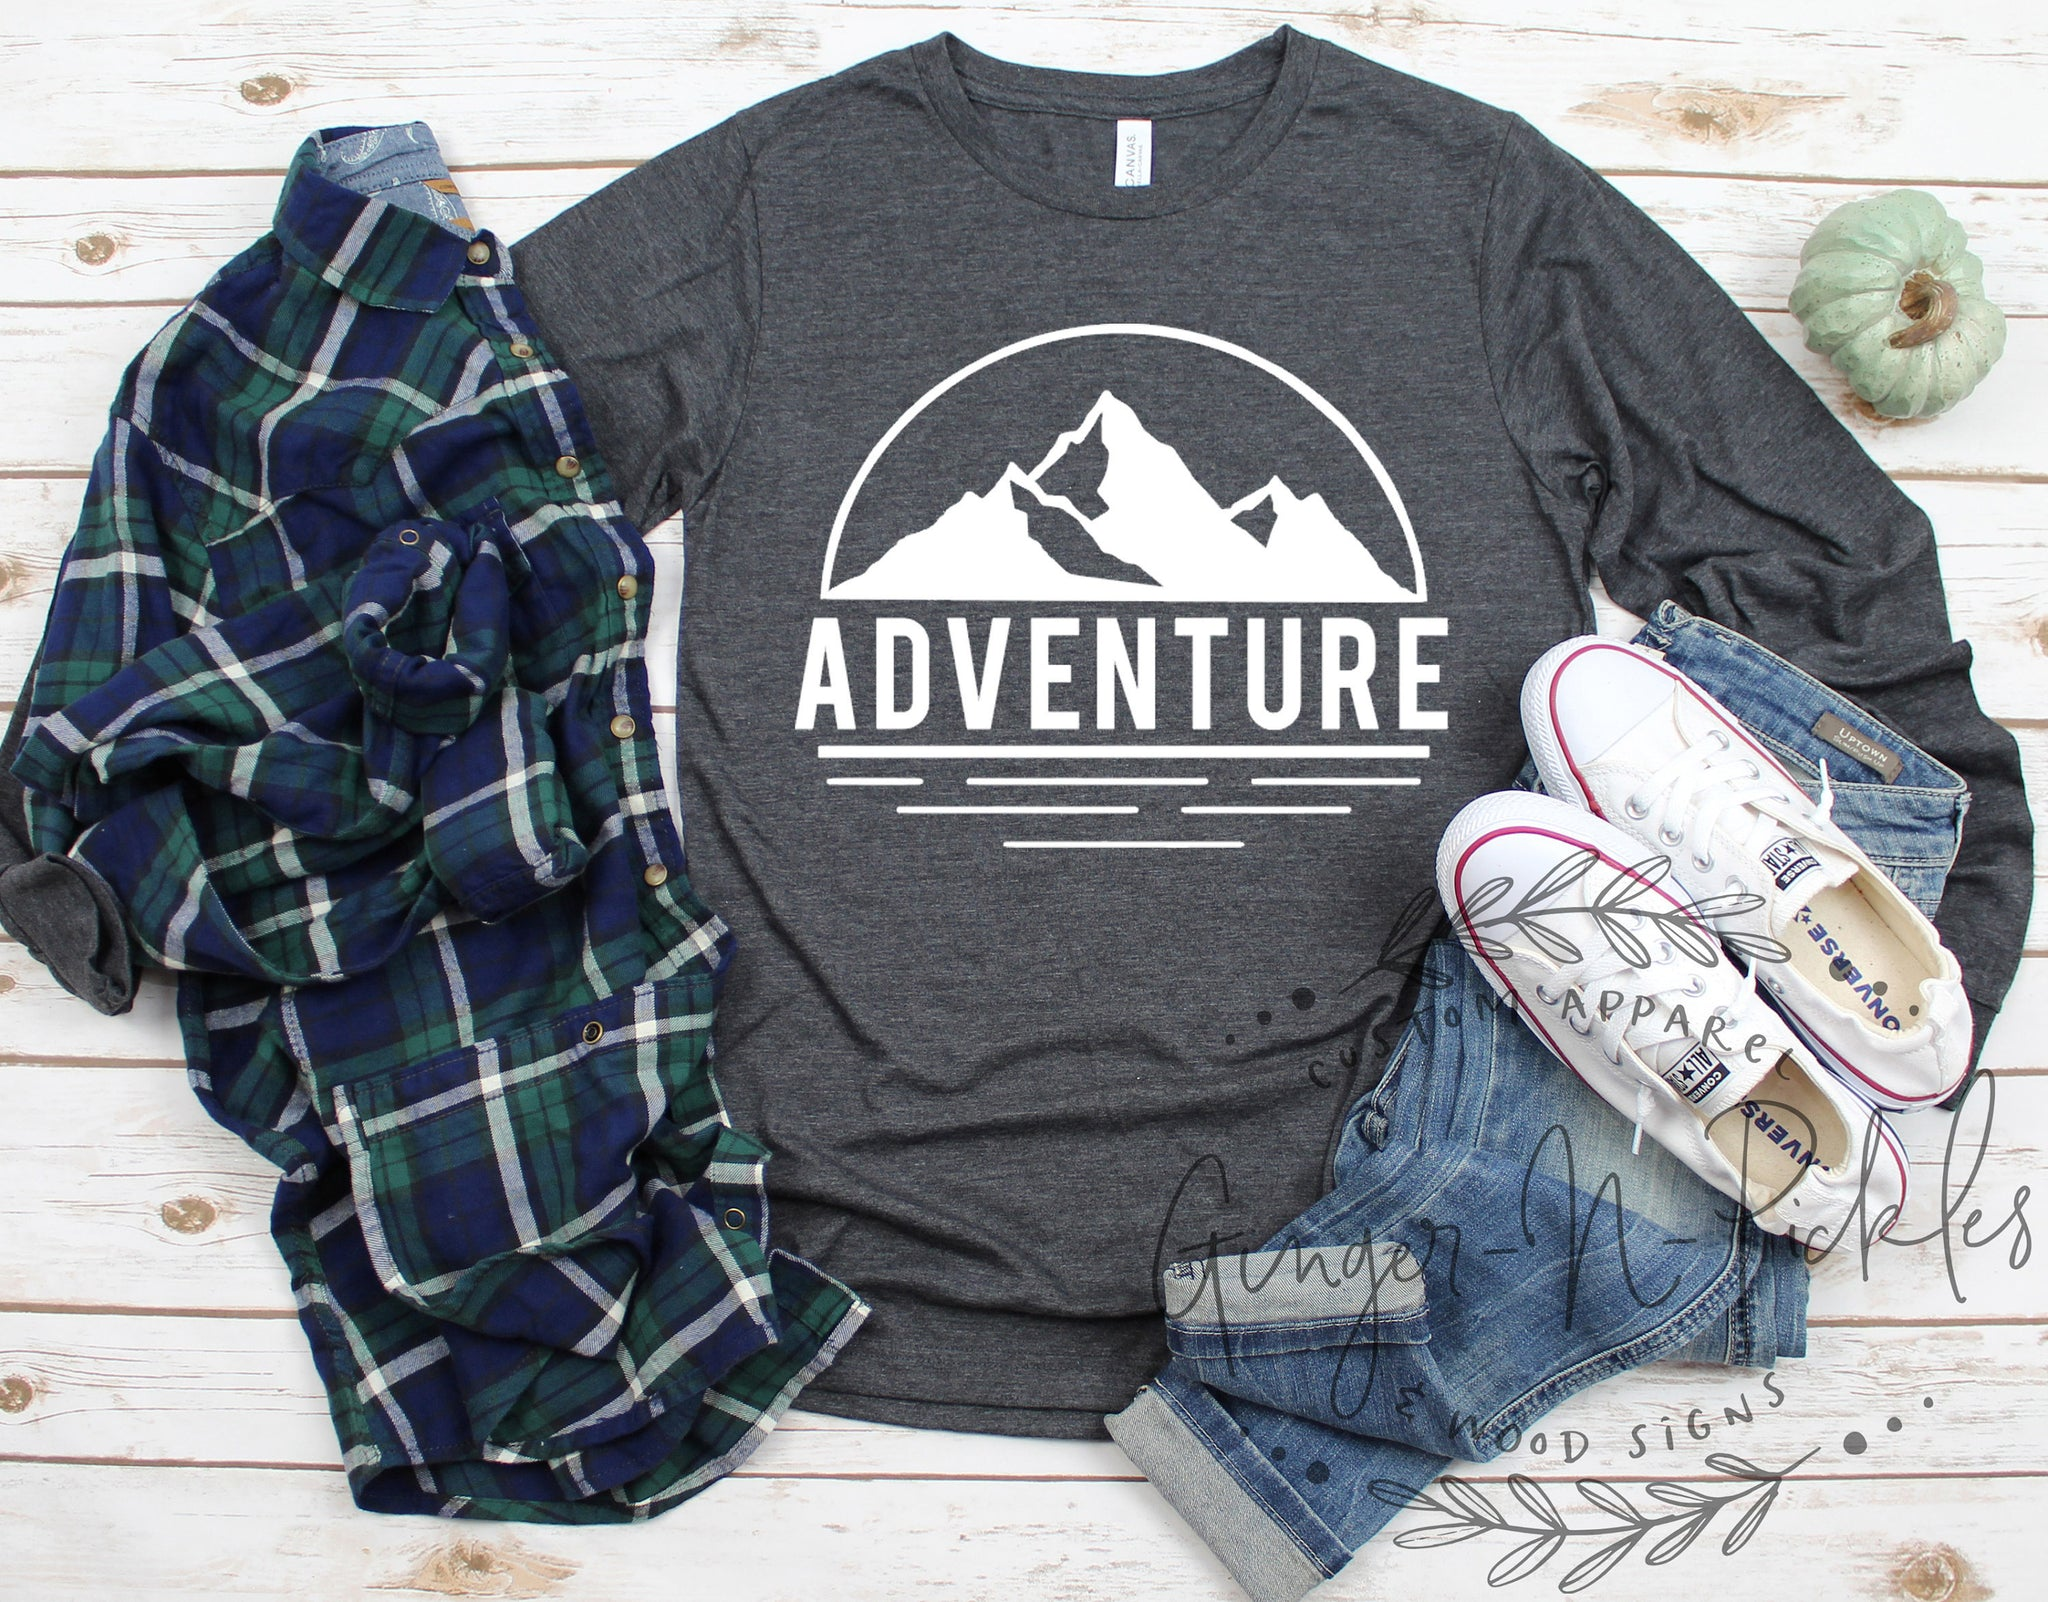 Adventure Long Sleeve Shirt, Vintage Style Graphic Tee, Boyfriend Style T-Shirt, Adventure Shirt Hiking Shirt Get Lost Shirt Boyfriend Shirt